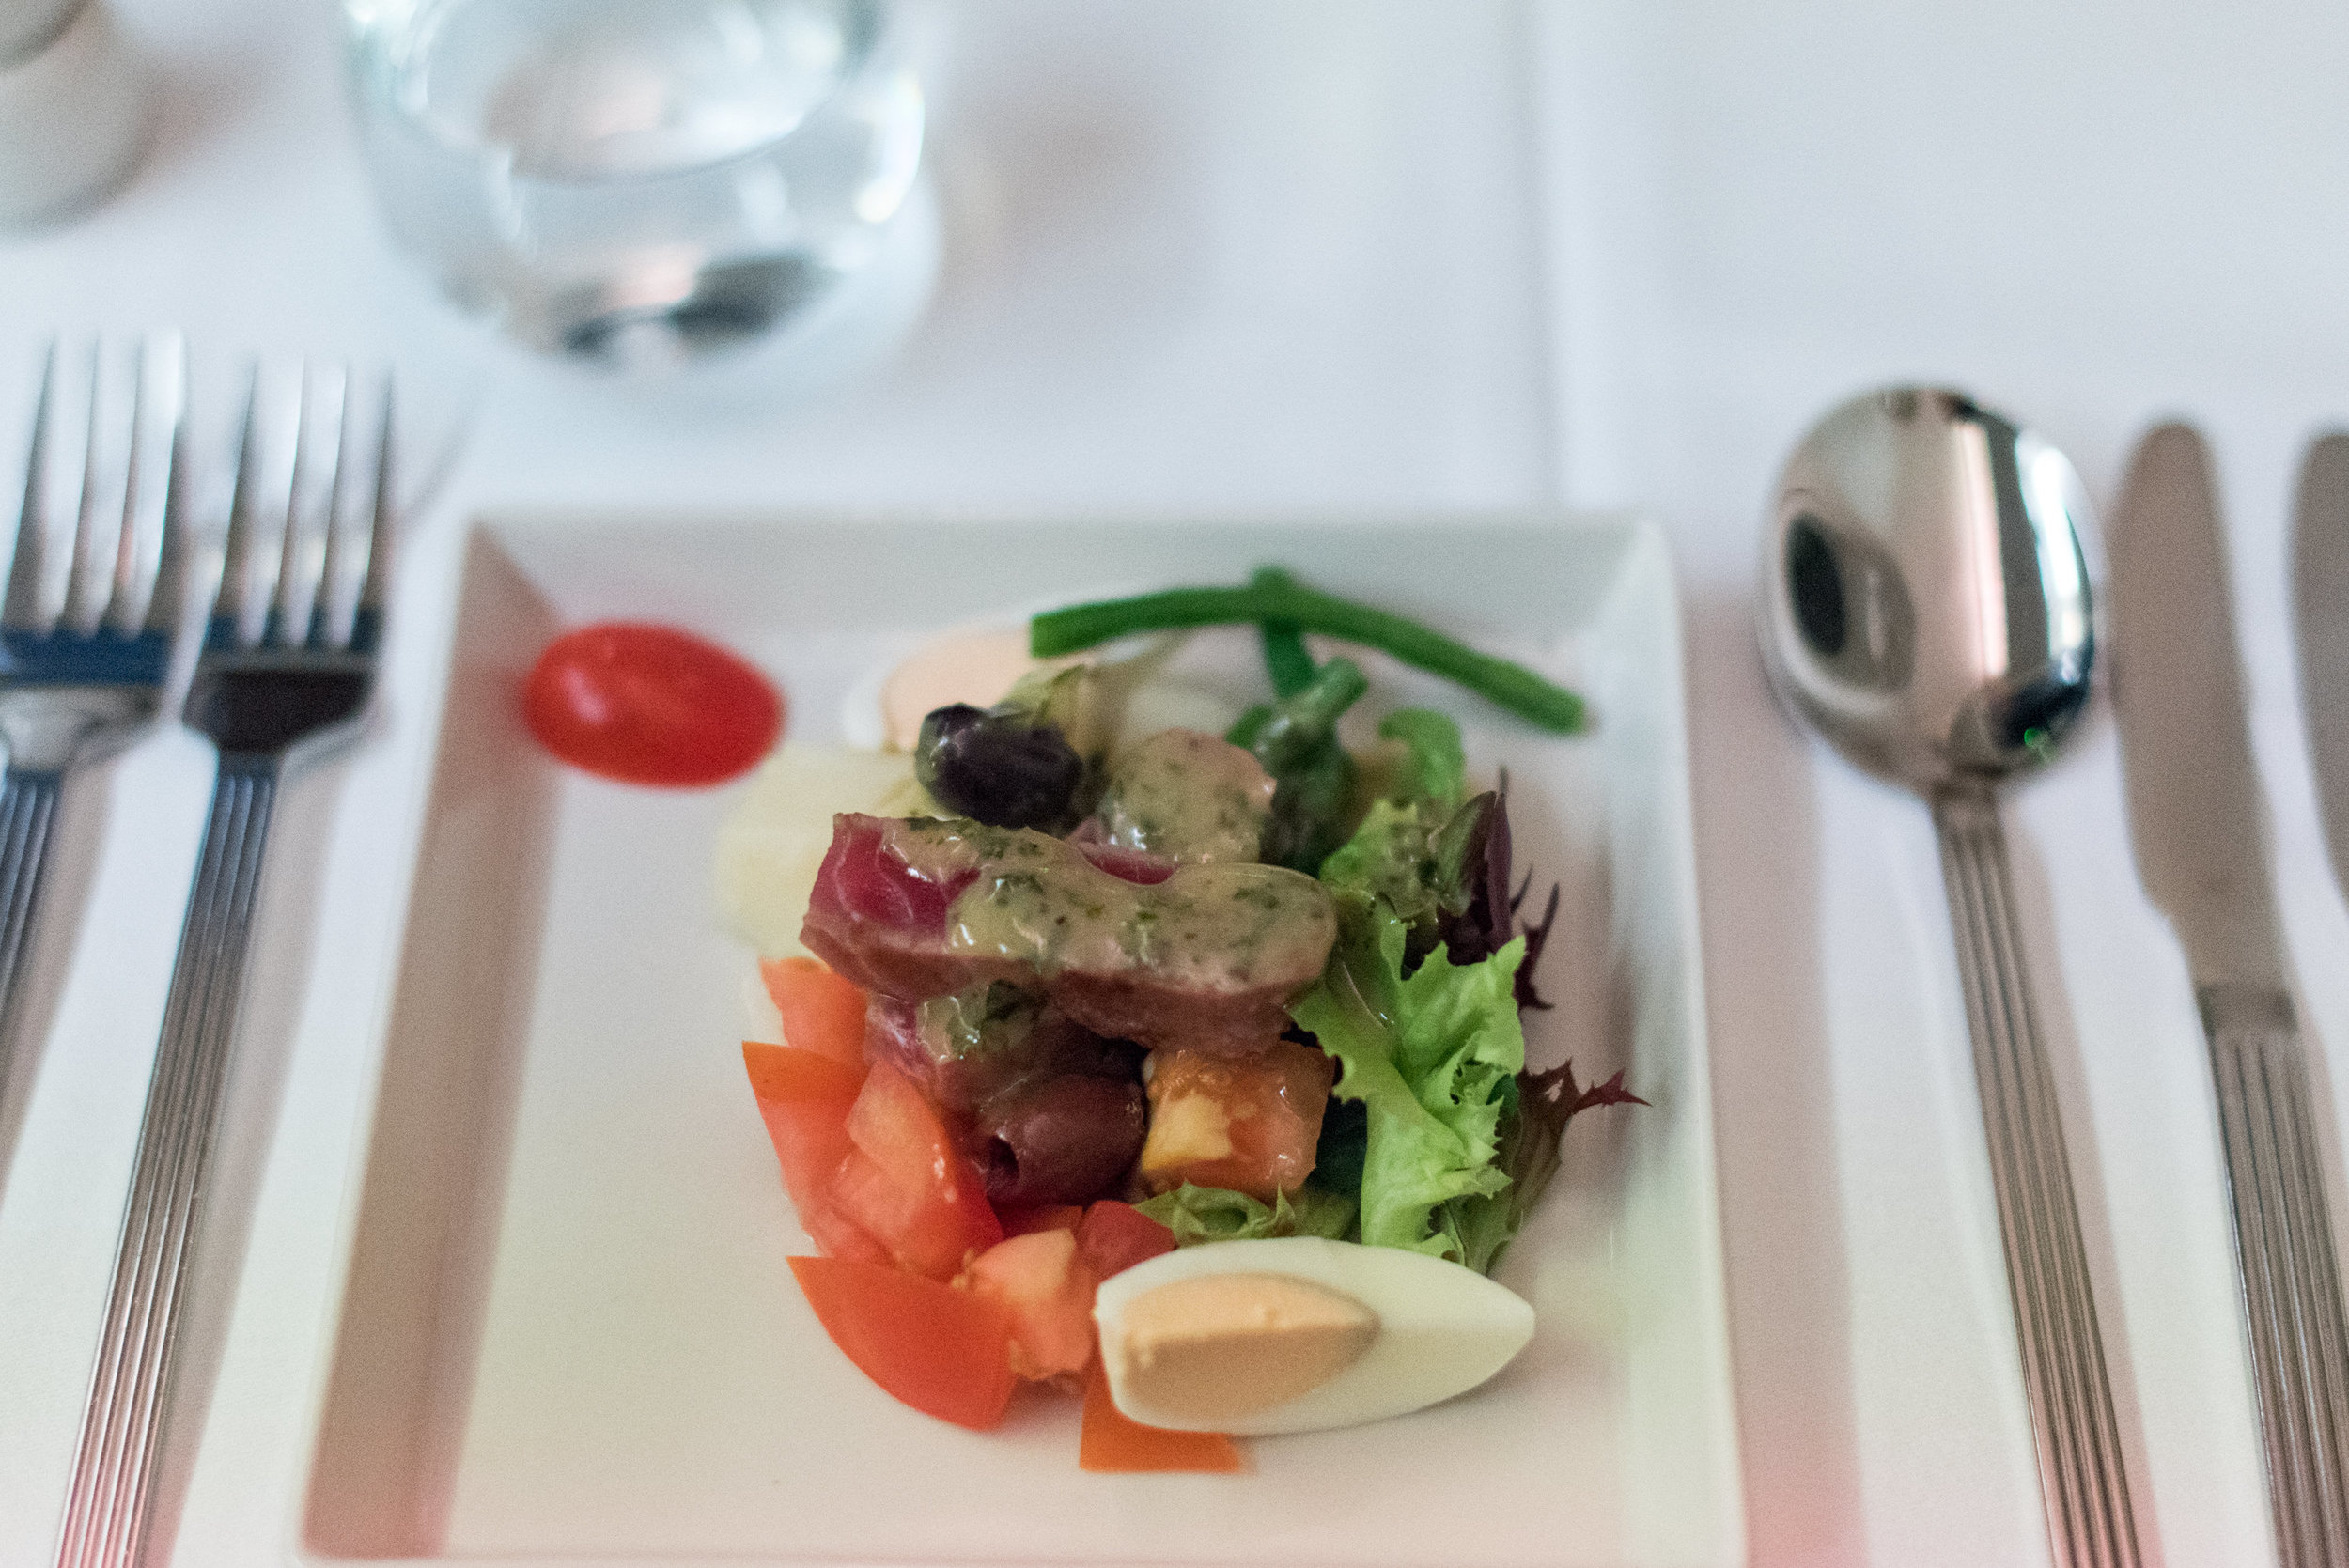 Seared Tuna on Nicoise Salad - Dinner Service  Singapore Airlines Business Class SQ285 A380-800 - SIN to AKL